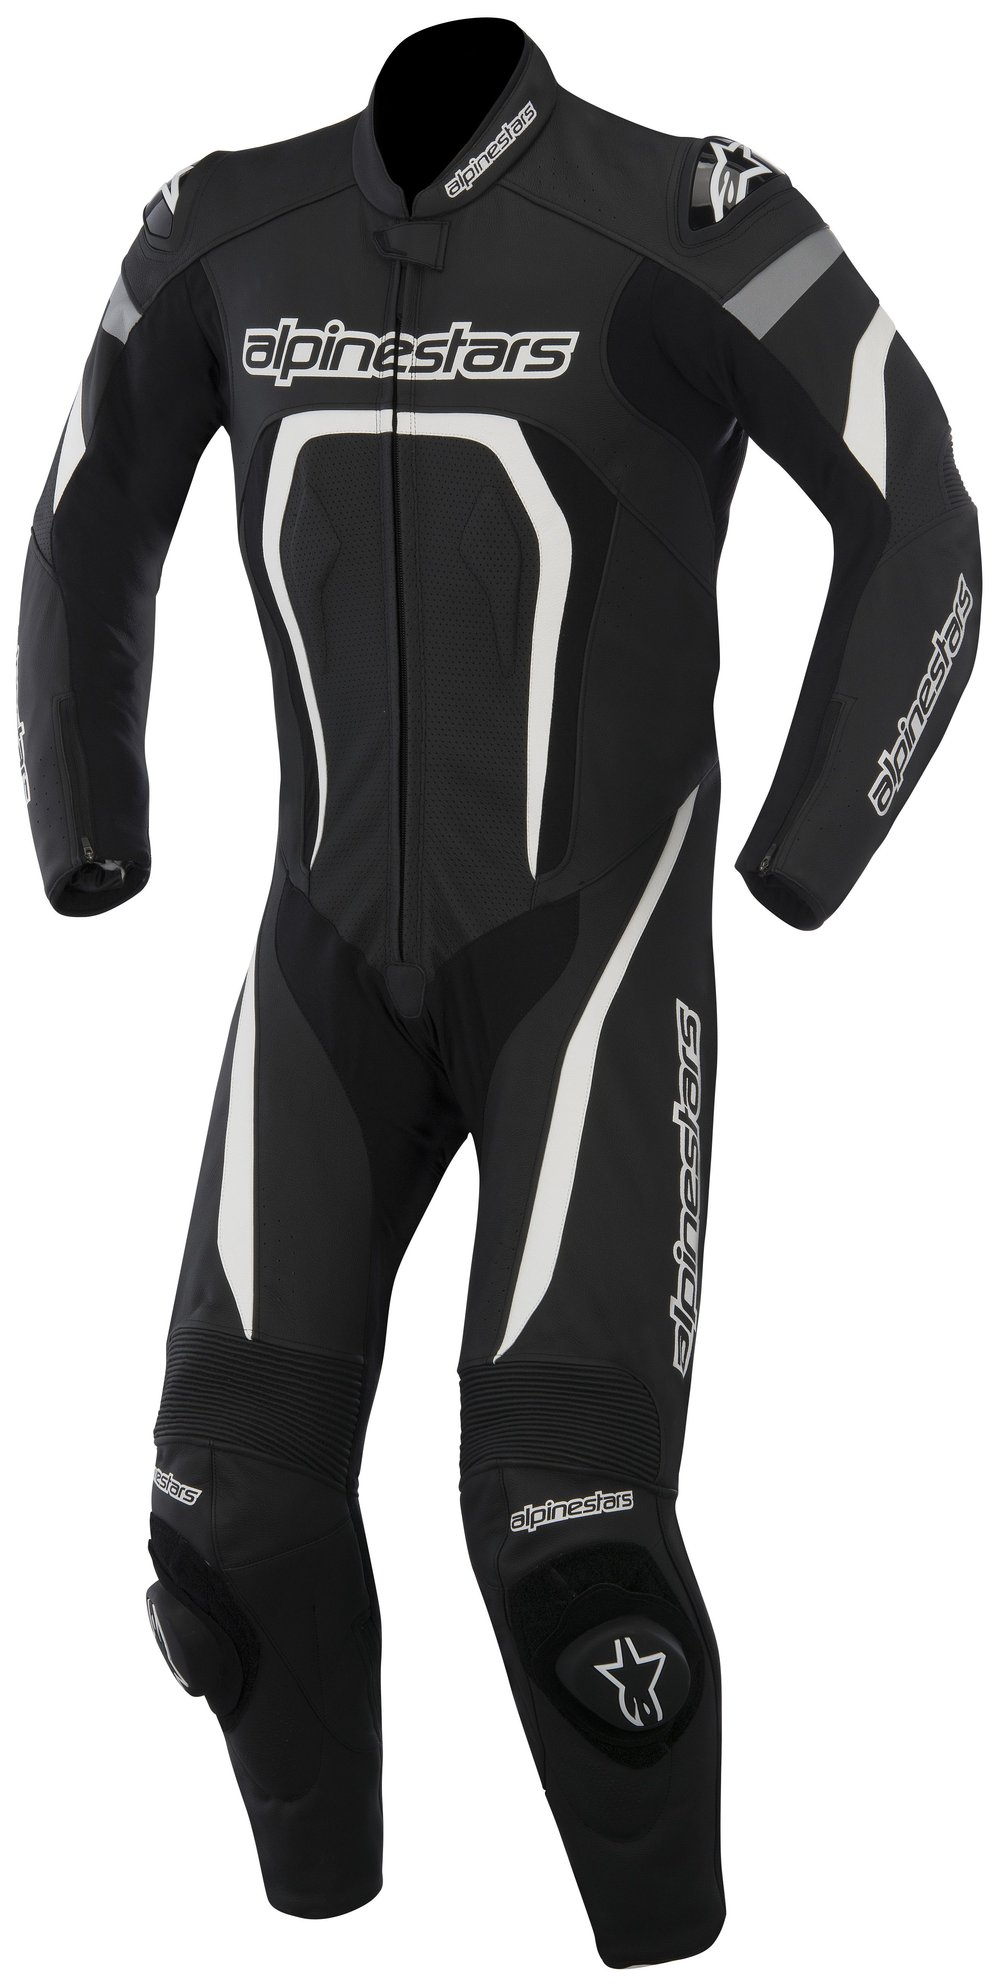 alpinestars_motegi1_piece_race_suit.jpg